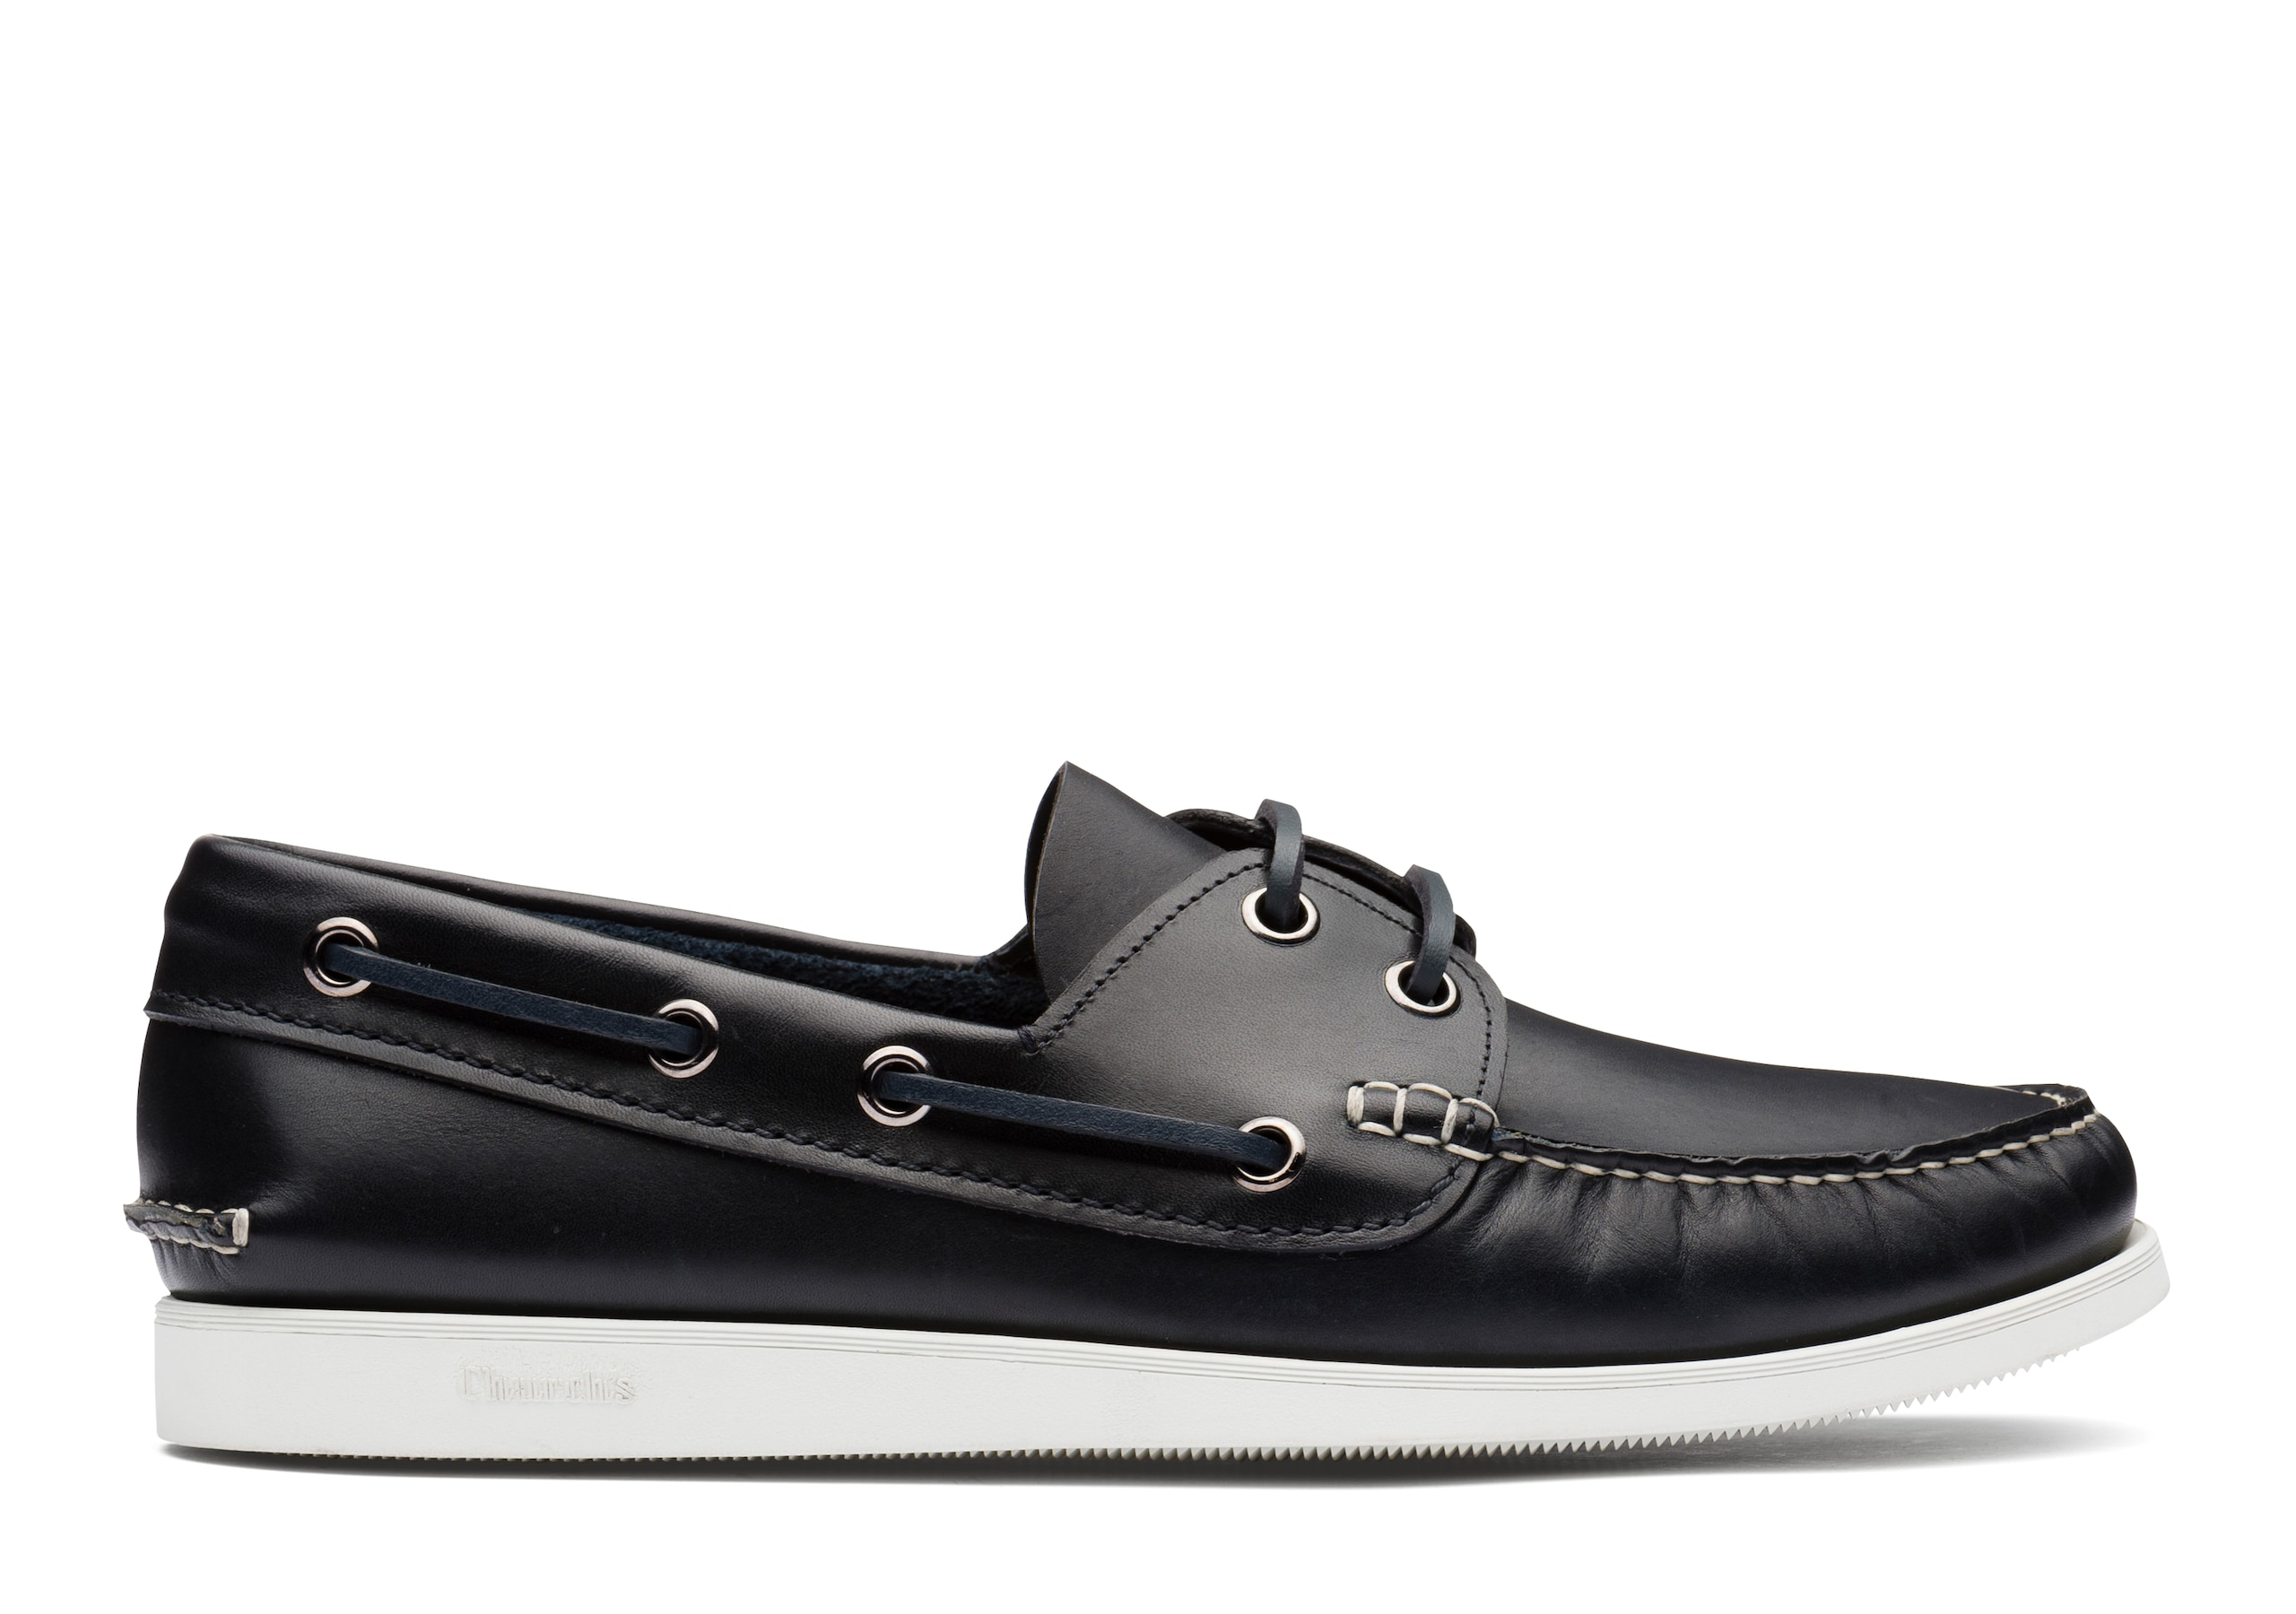 Marske Church's Calf Leather Boat Shoe Blue